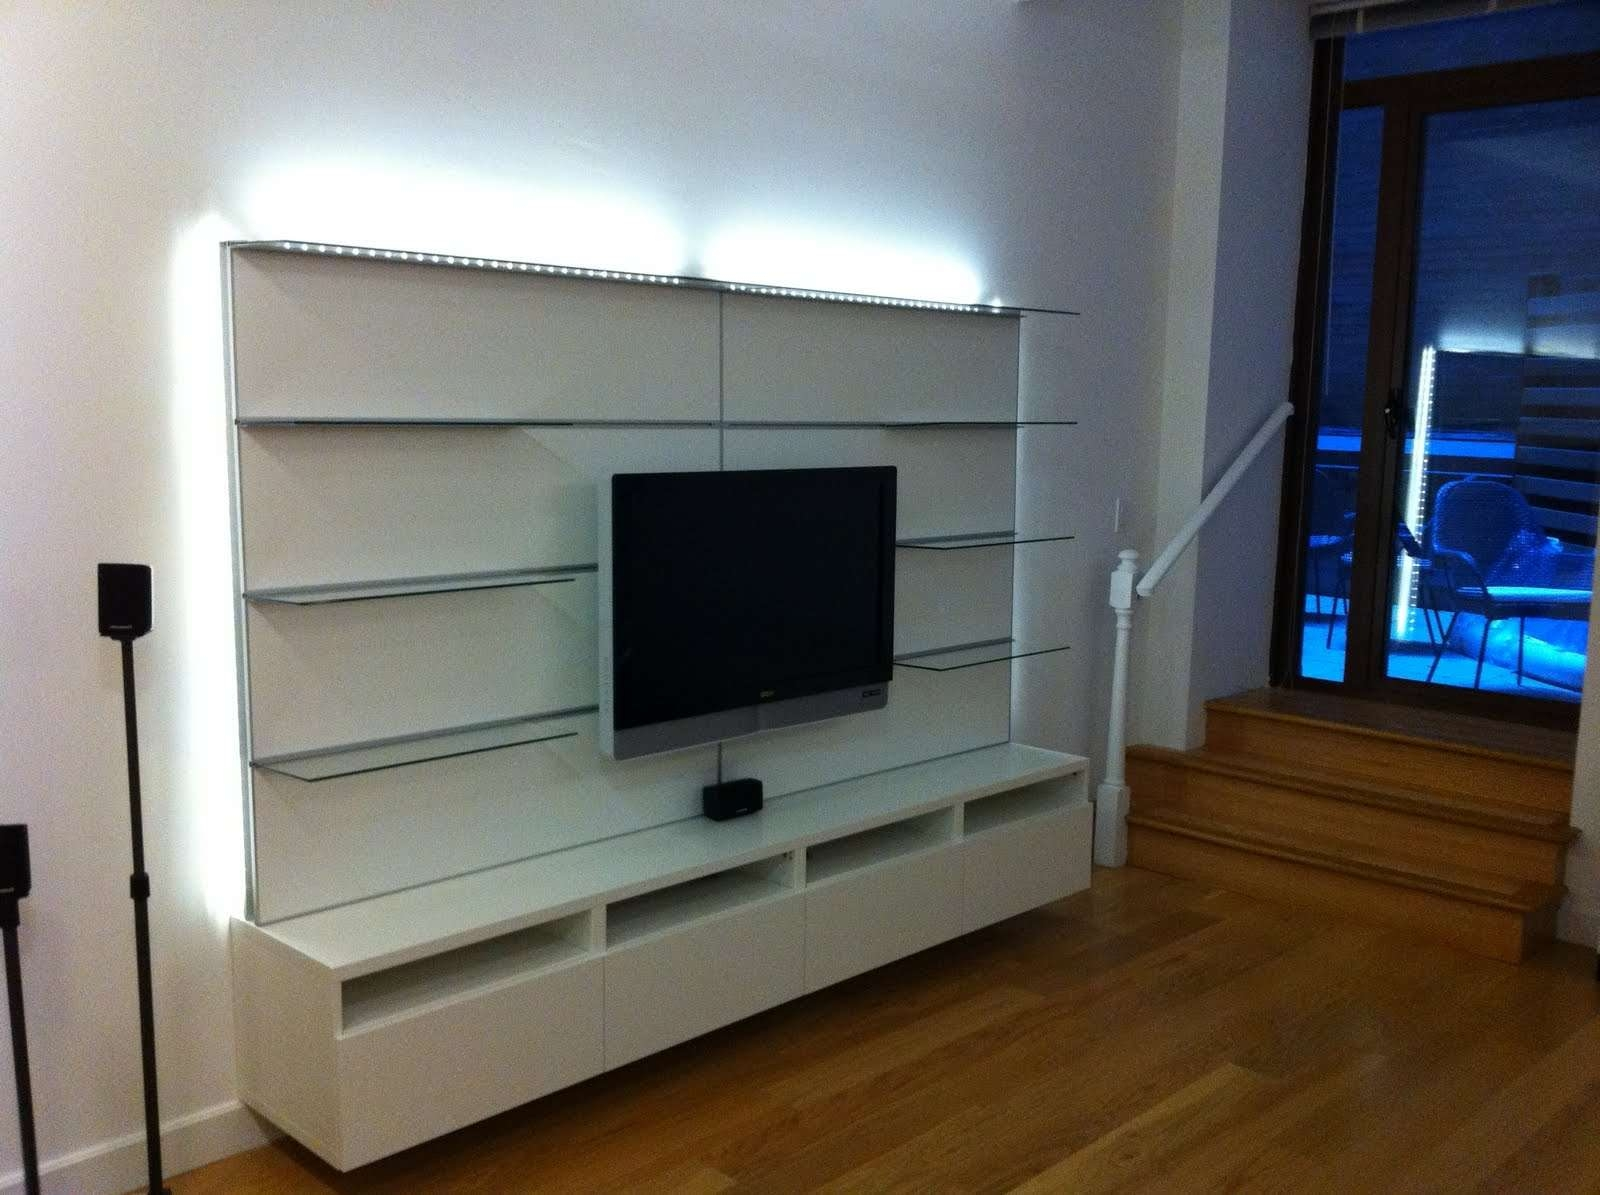 Wood Floating Media Cabinet For Tv Stand And Black Table Lamp Intended For Floating Glass Tv Stands (View 15 of 15)